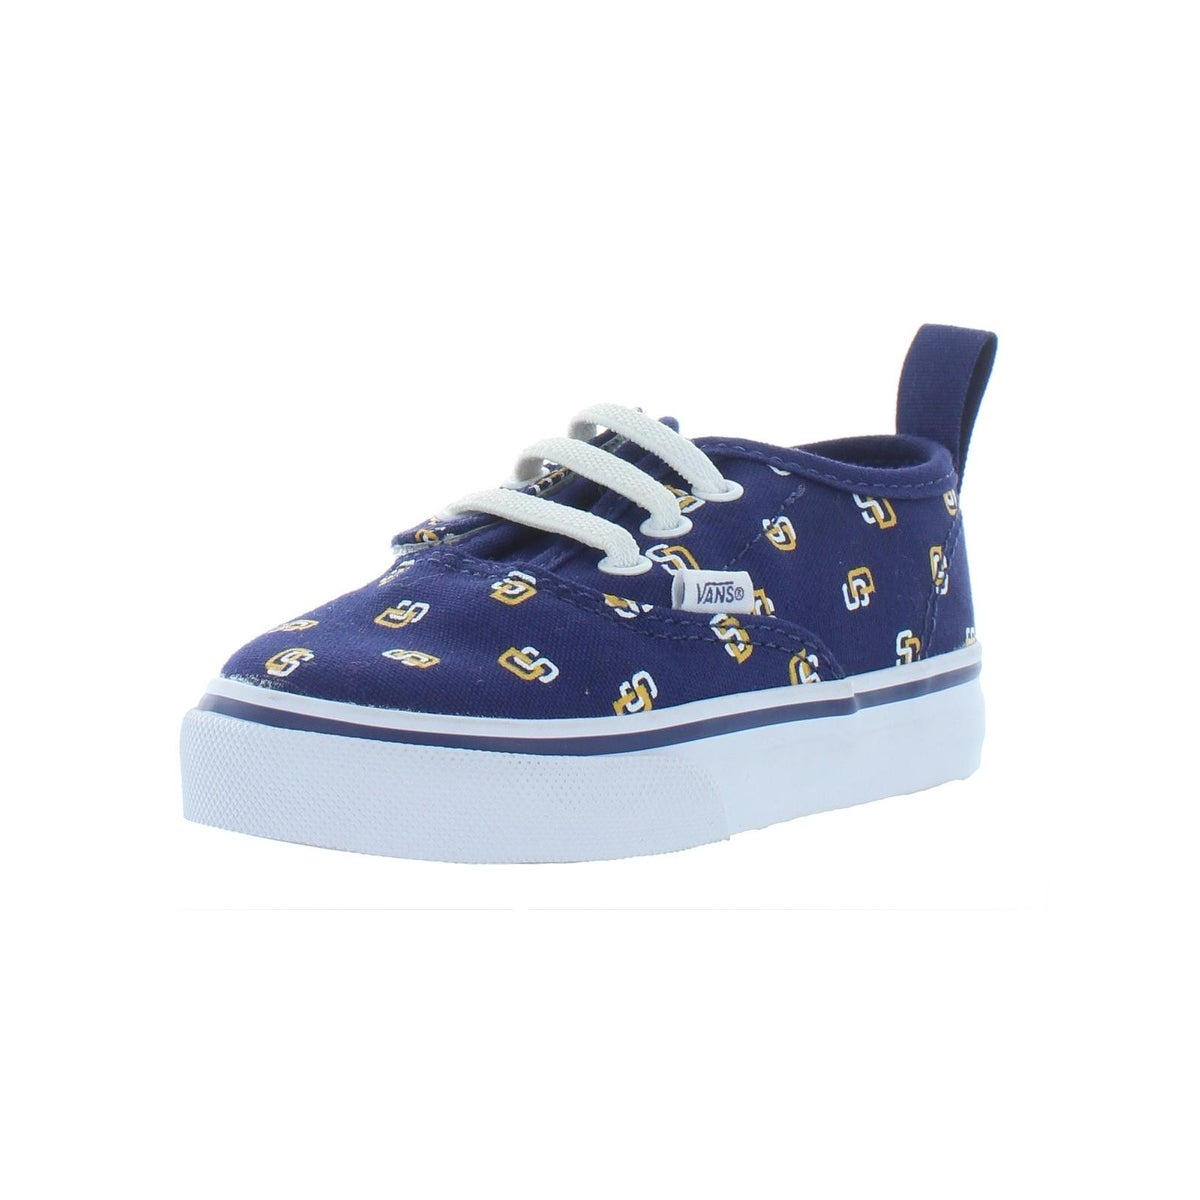 87f57de608 Vans Boys  Shoes